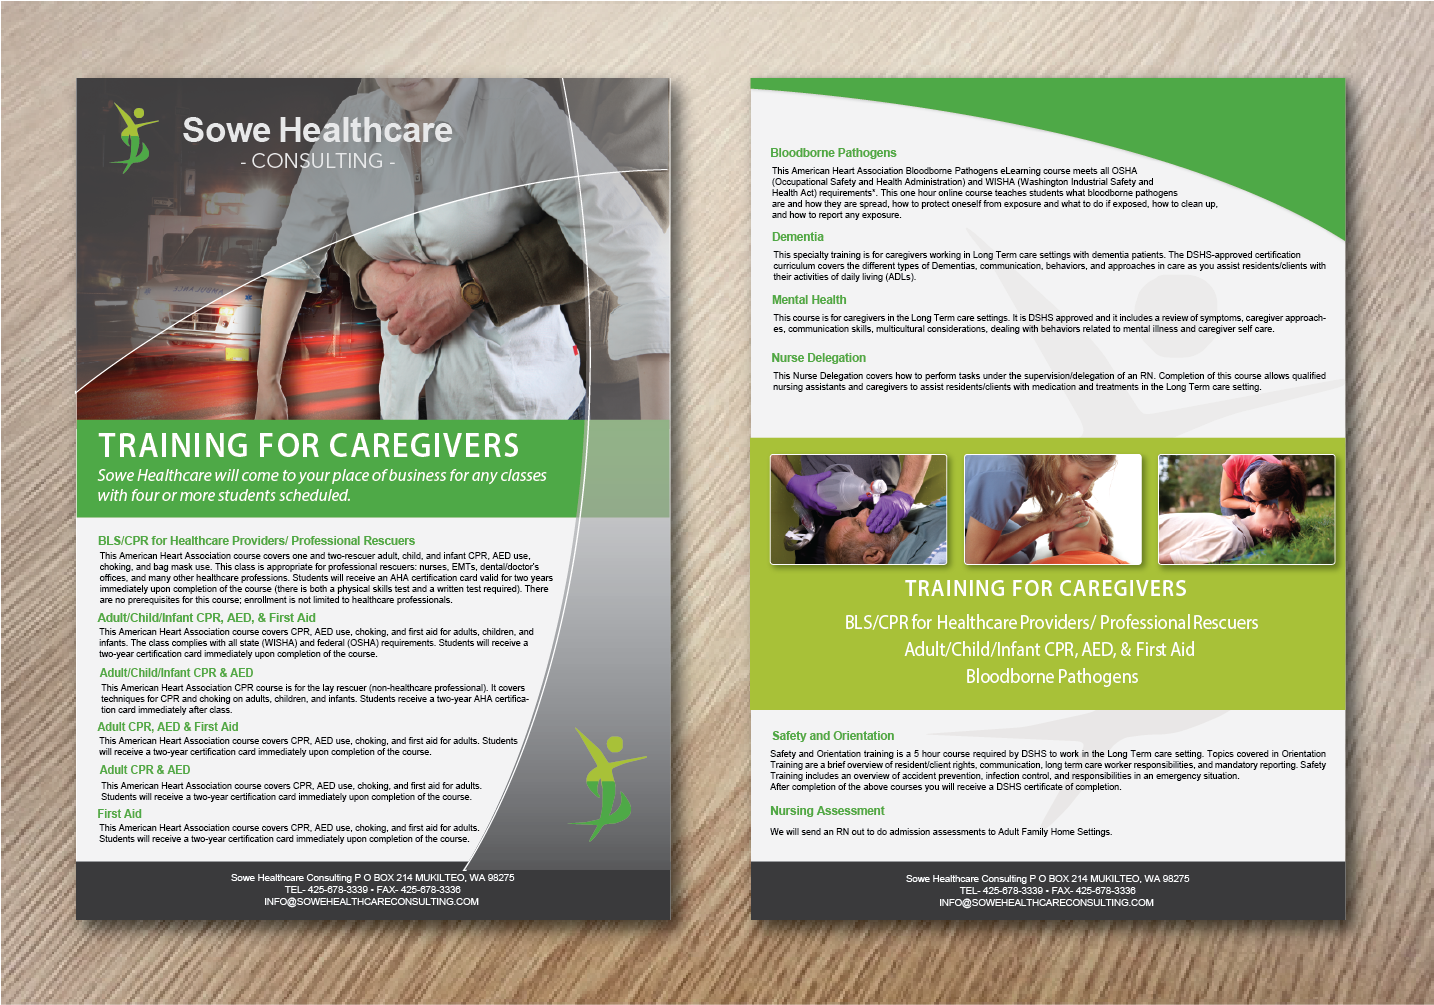 elegant playful healthcare flyer design for a company by alex989